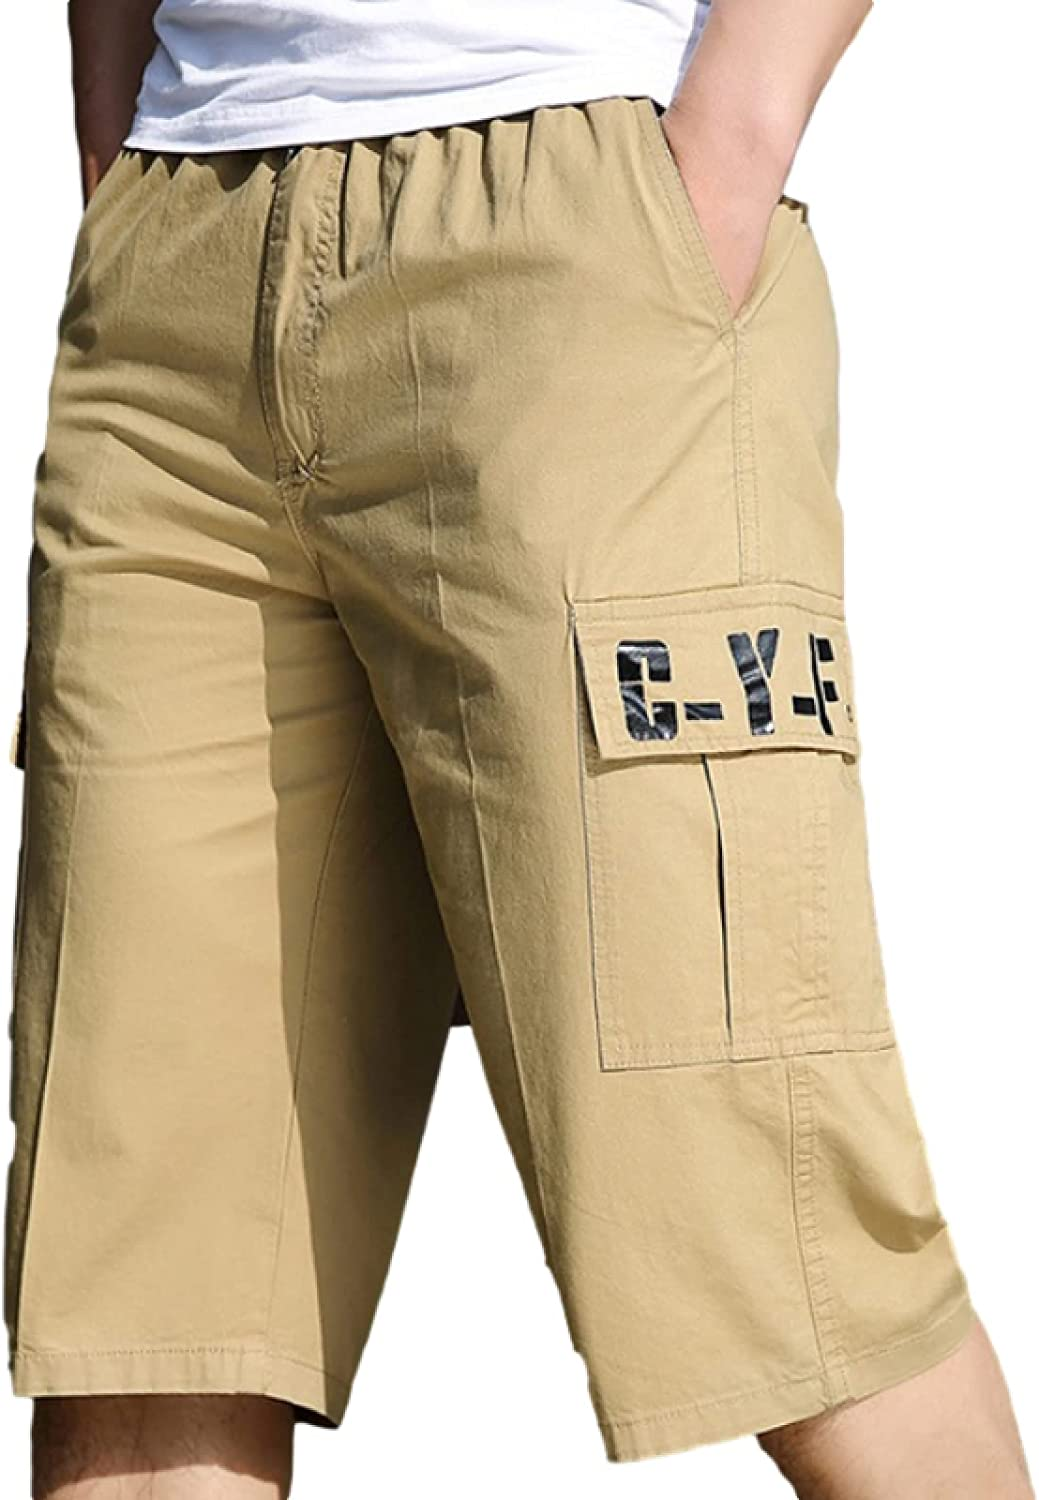 Segindy Men's Cargo Shorts Summer Fashion Stitching Pockets Outdoor Solid Color Large